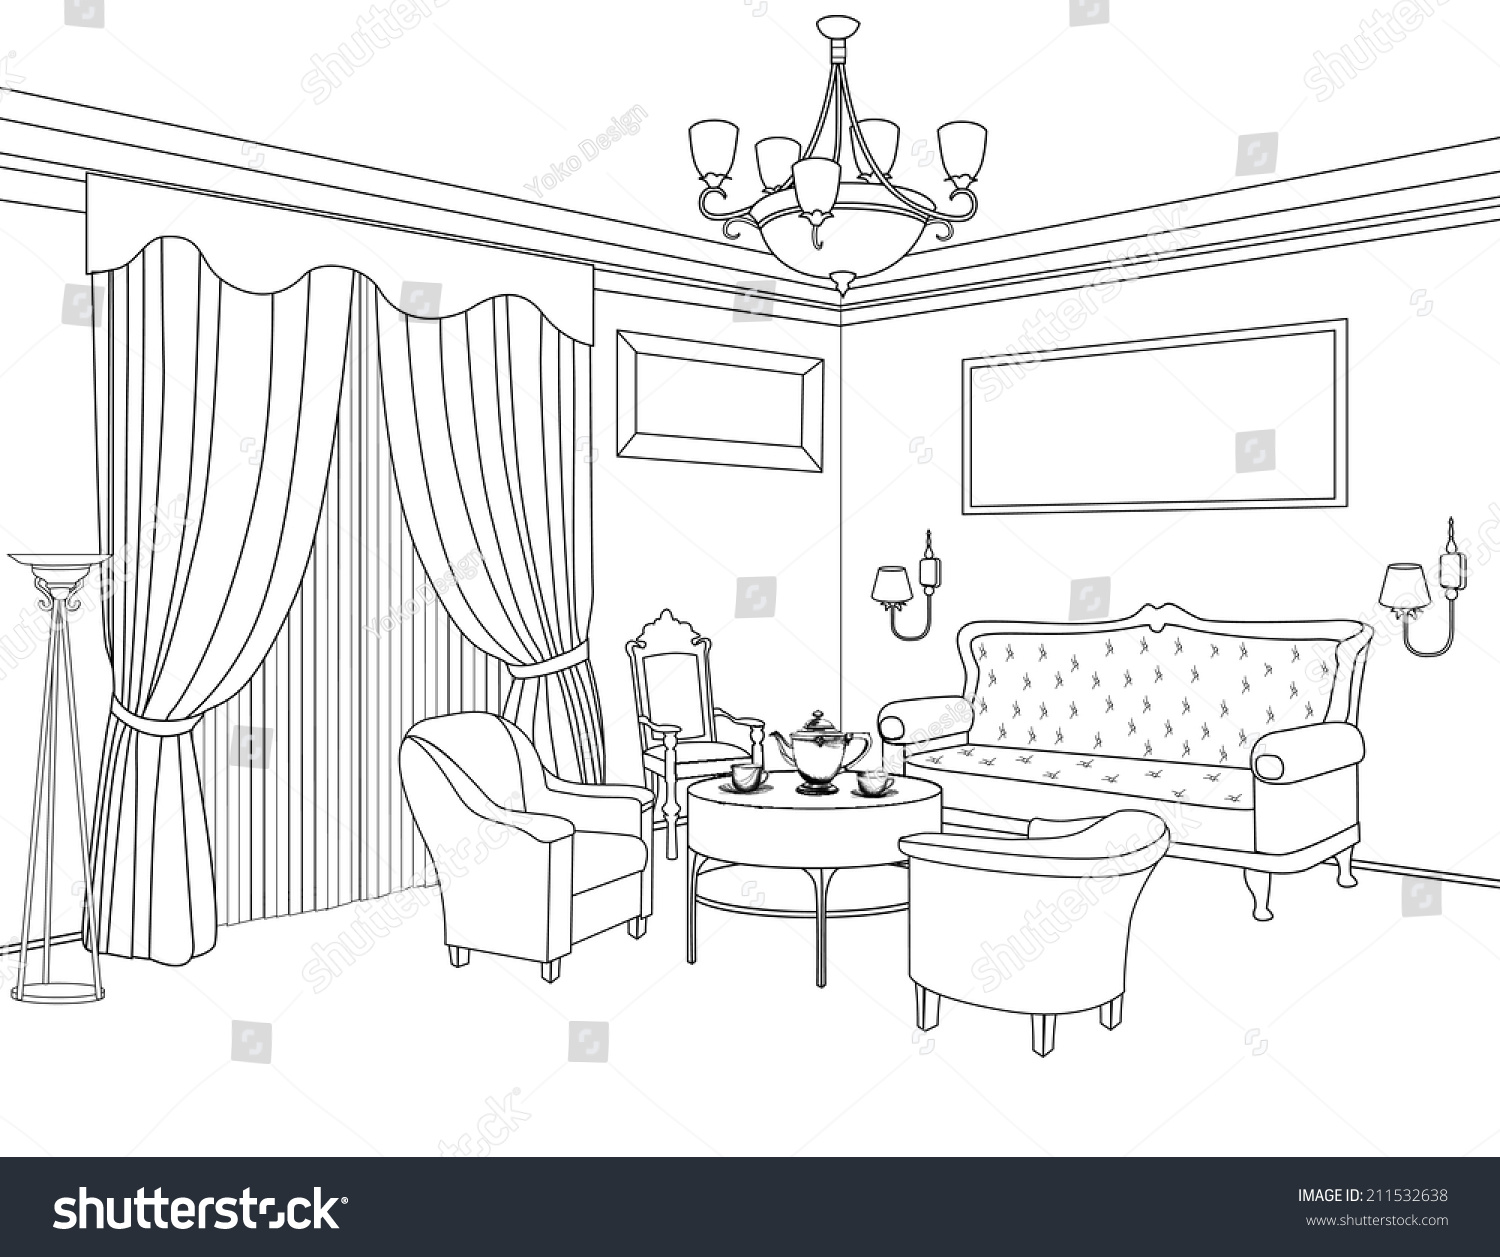 Interior Design Sketches Living Room interior outline sketch furniture blueprint architectural stock